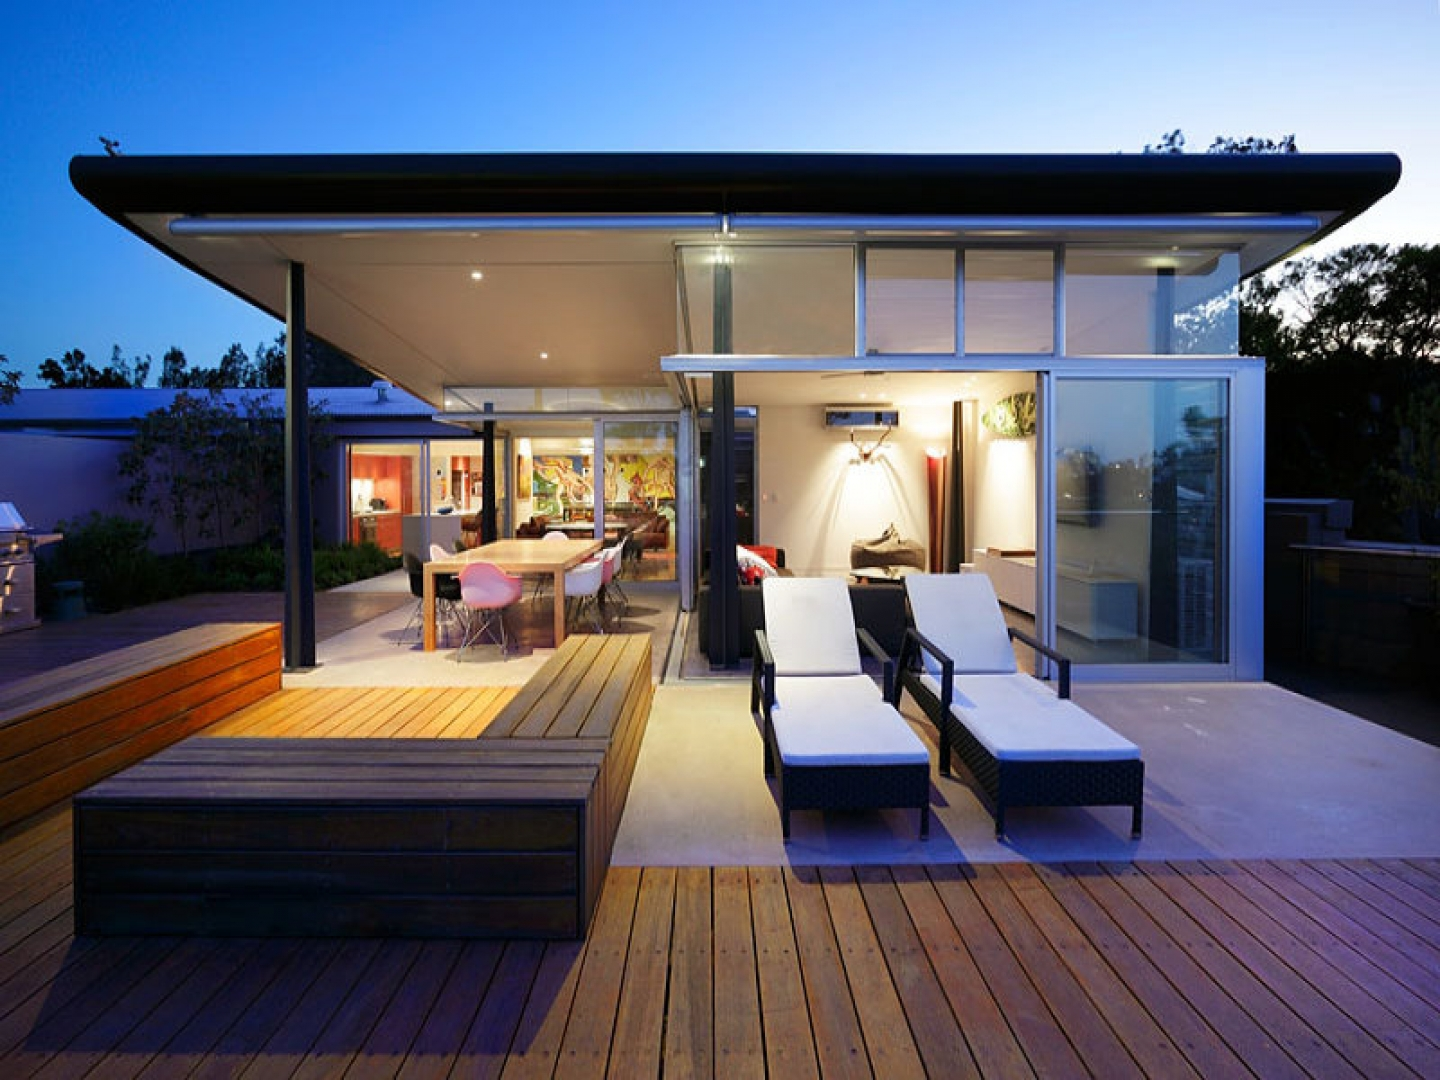 modern-design-homes-modern-design-11-on-home-architecture-design-ideas